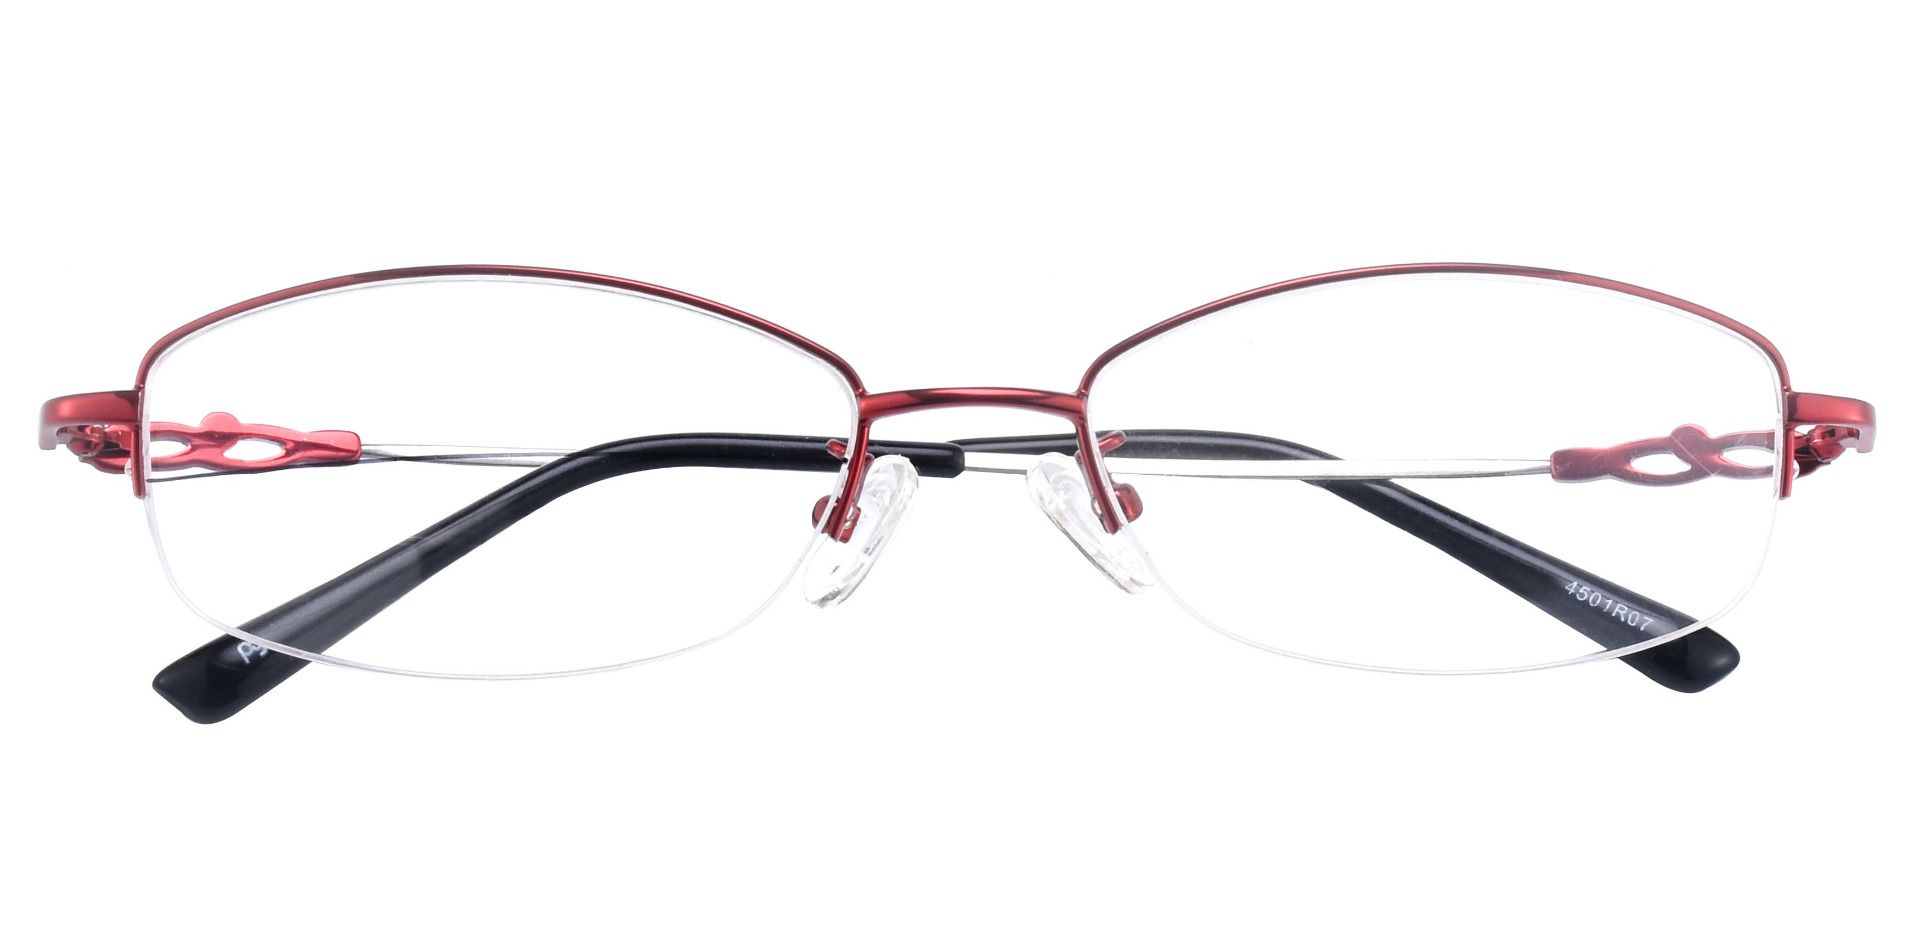 Meadowsweet Oval Lined Bifocal Glasses - Red